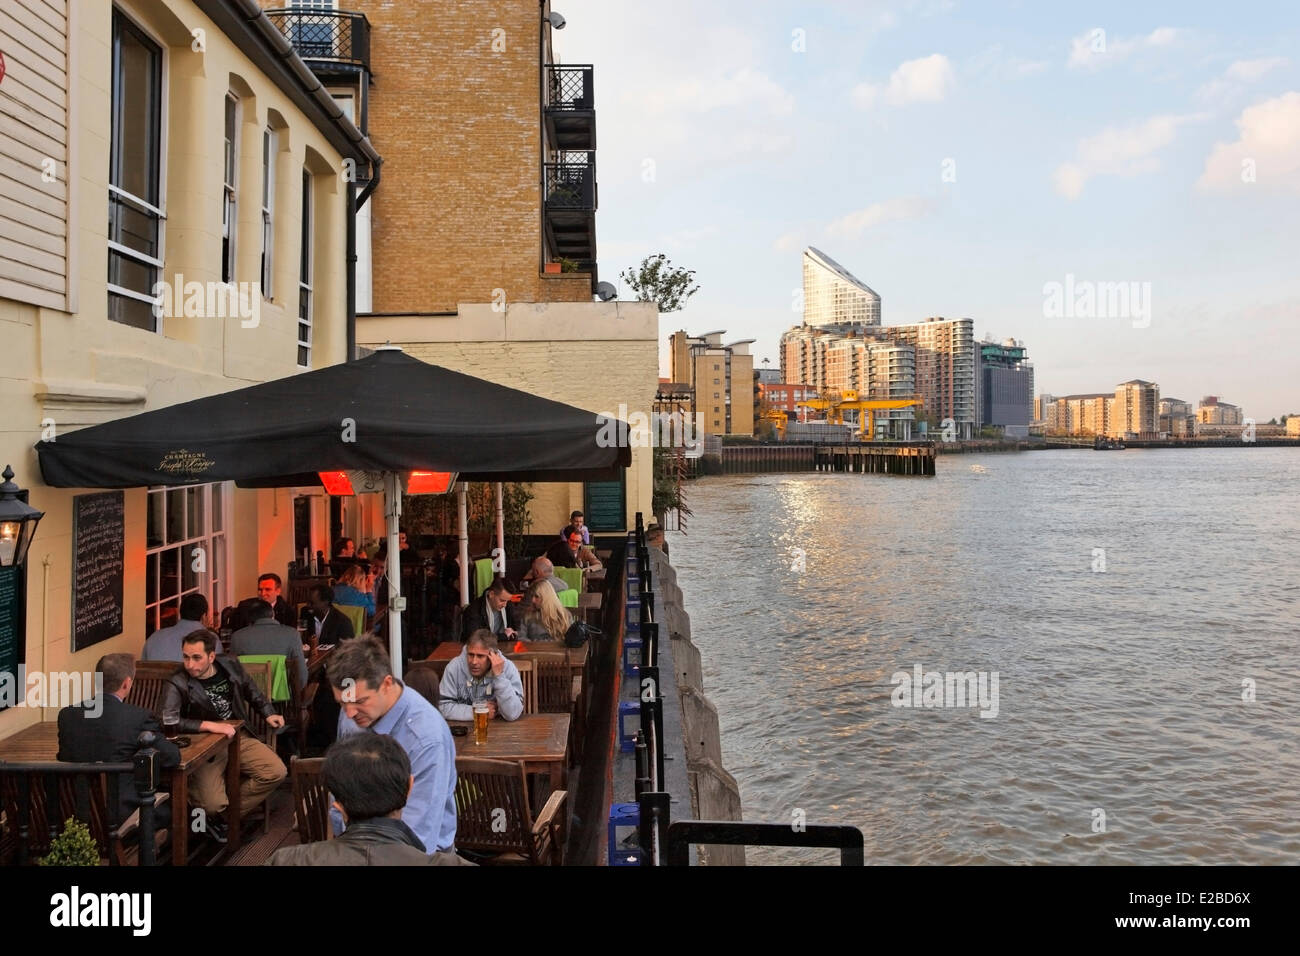 United Kingdom, London, the Isle of Dogs, the Gun restaurant - Stock Image